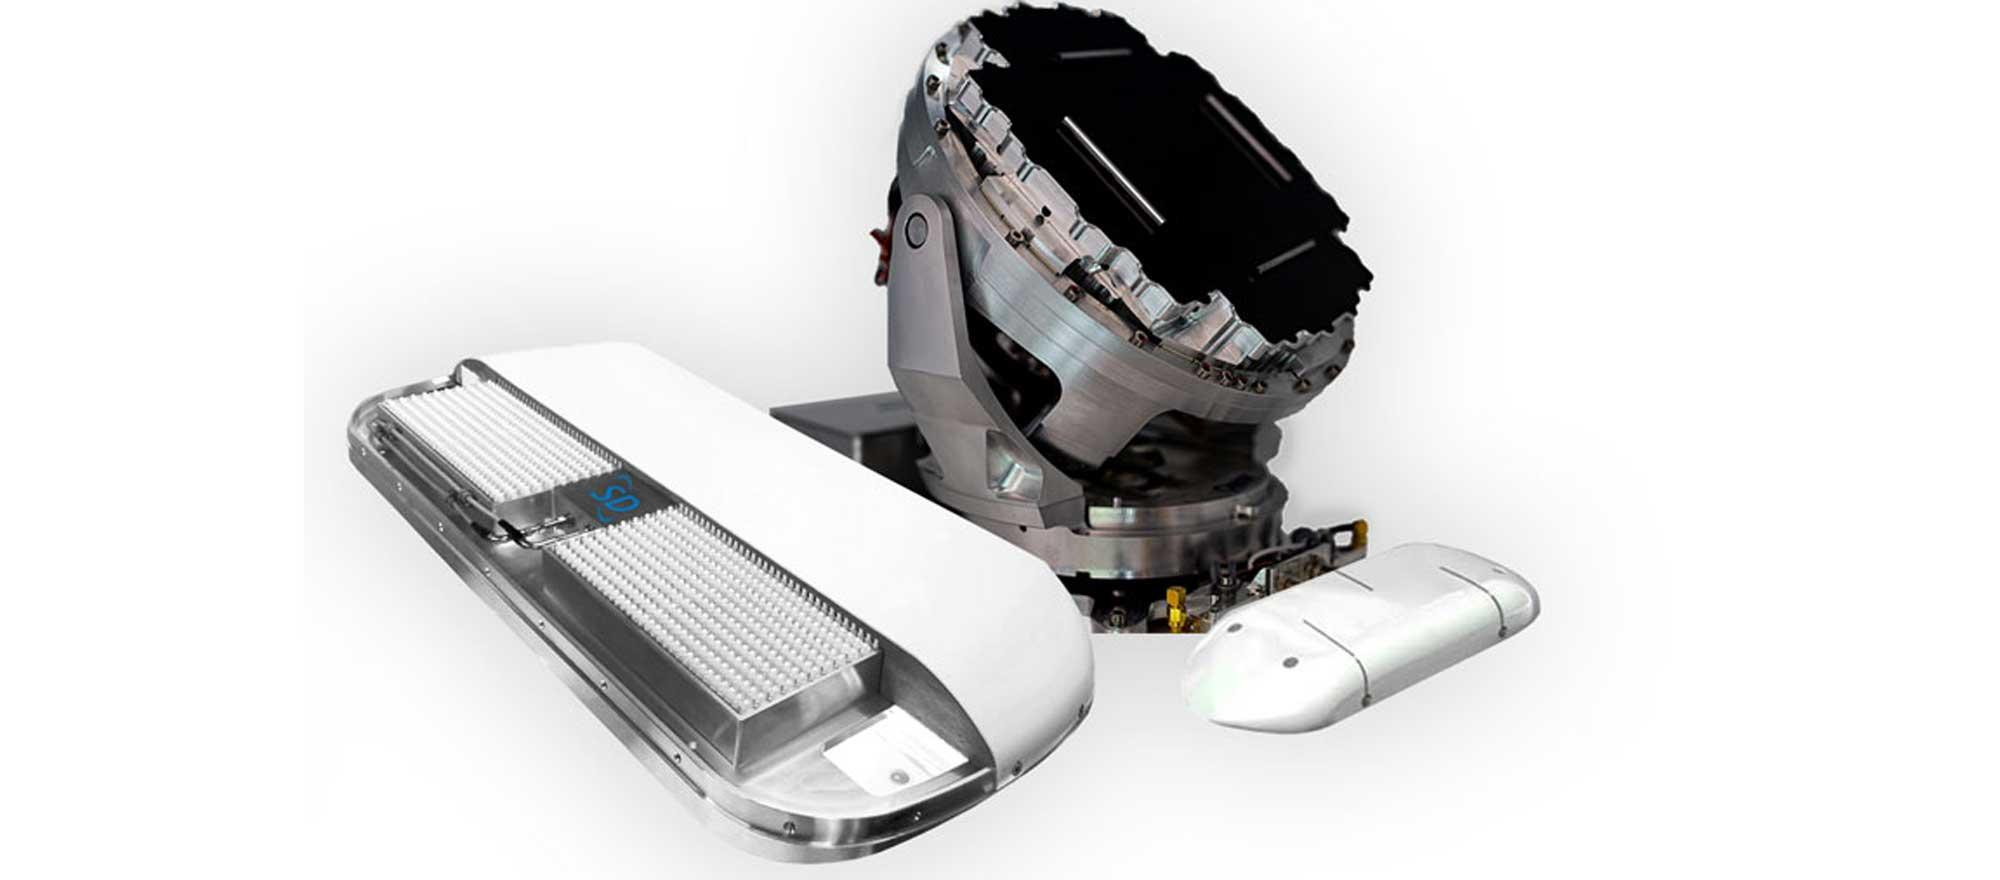 New Satcom Direct equipment brings high-speed connectivity to small aircraft.